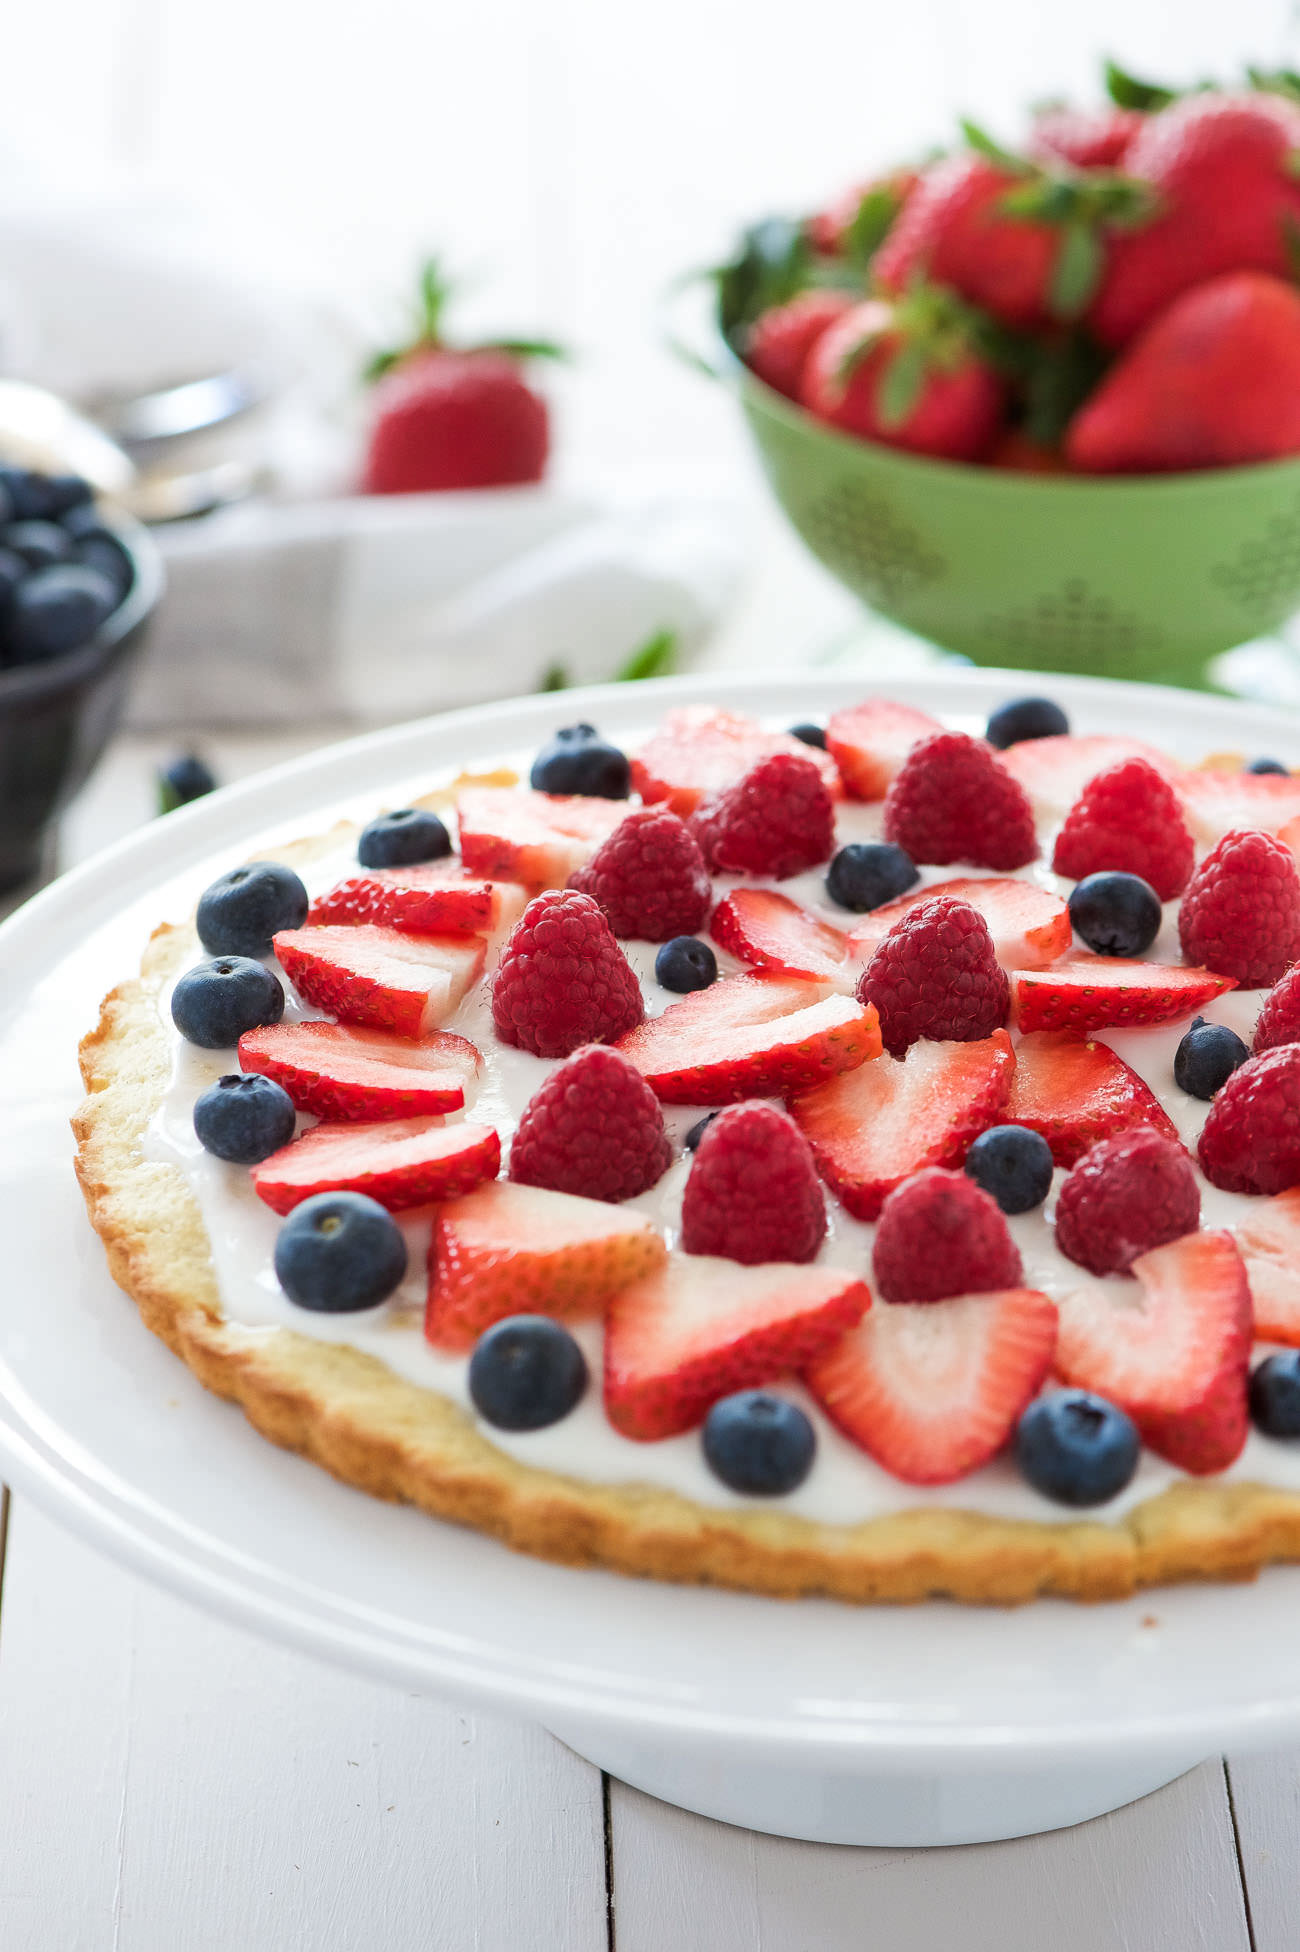 This Berry Tart with Lemon Cookie Crust has made all my spring dessert dreams come true! A citrus cookie crust topped with vanilla greek yogurt and fresh berries! The ideal and simple dessert to impress any guest!